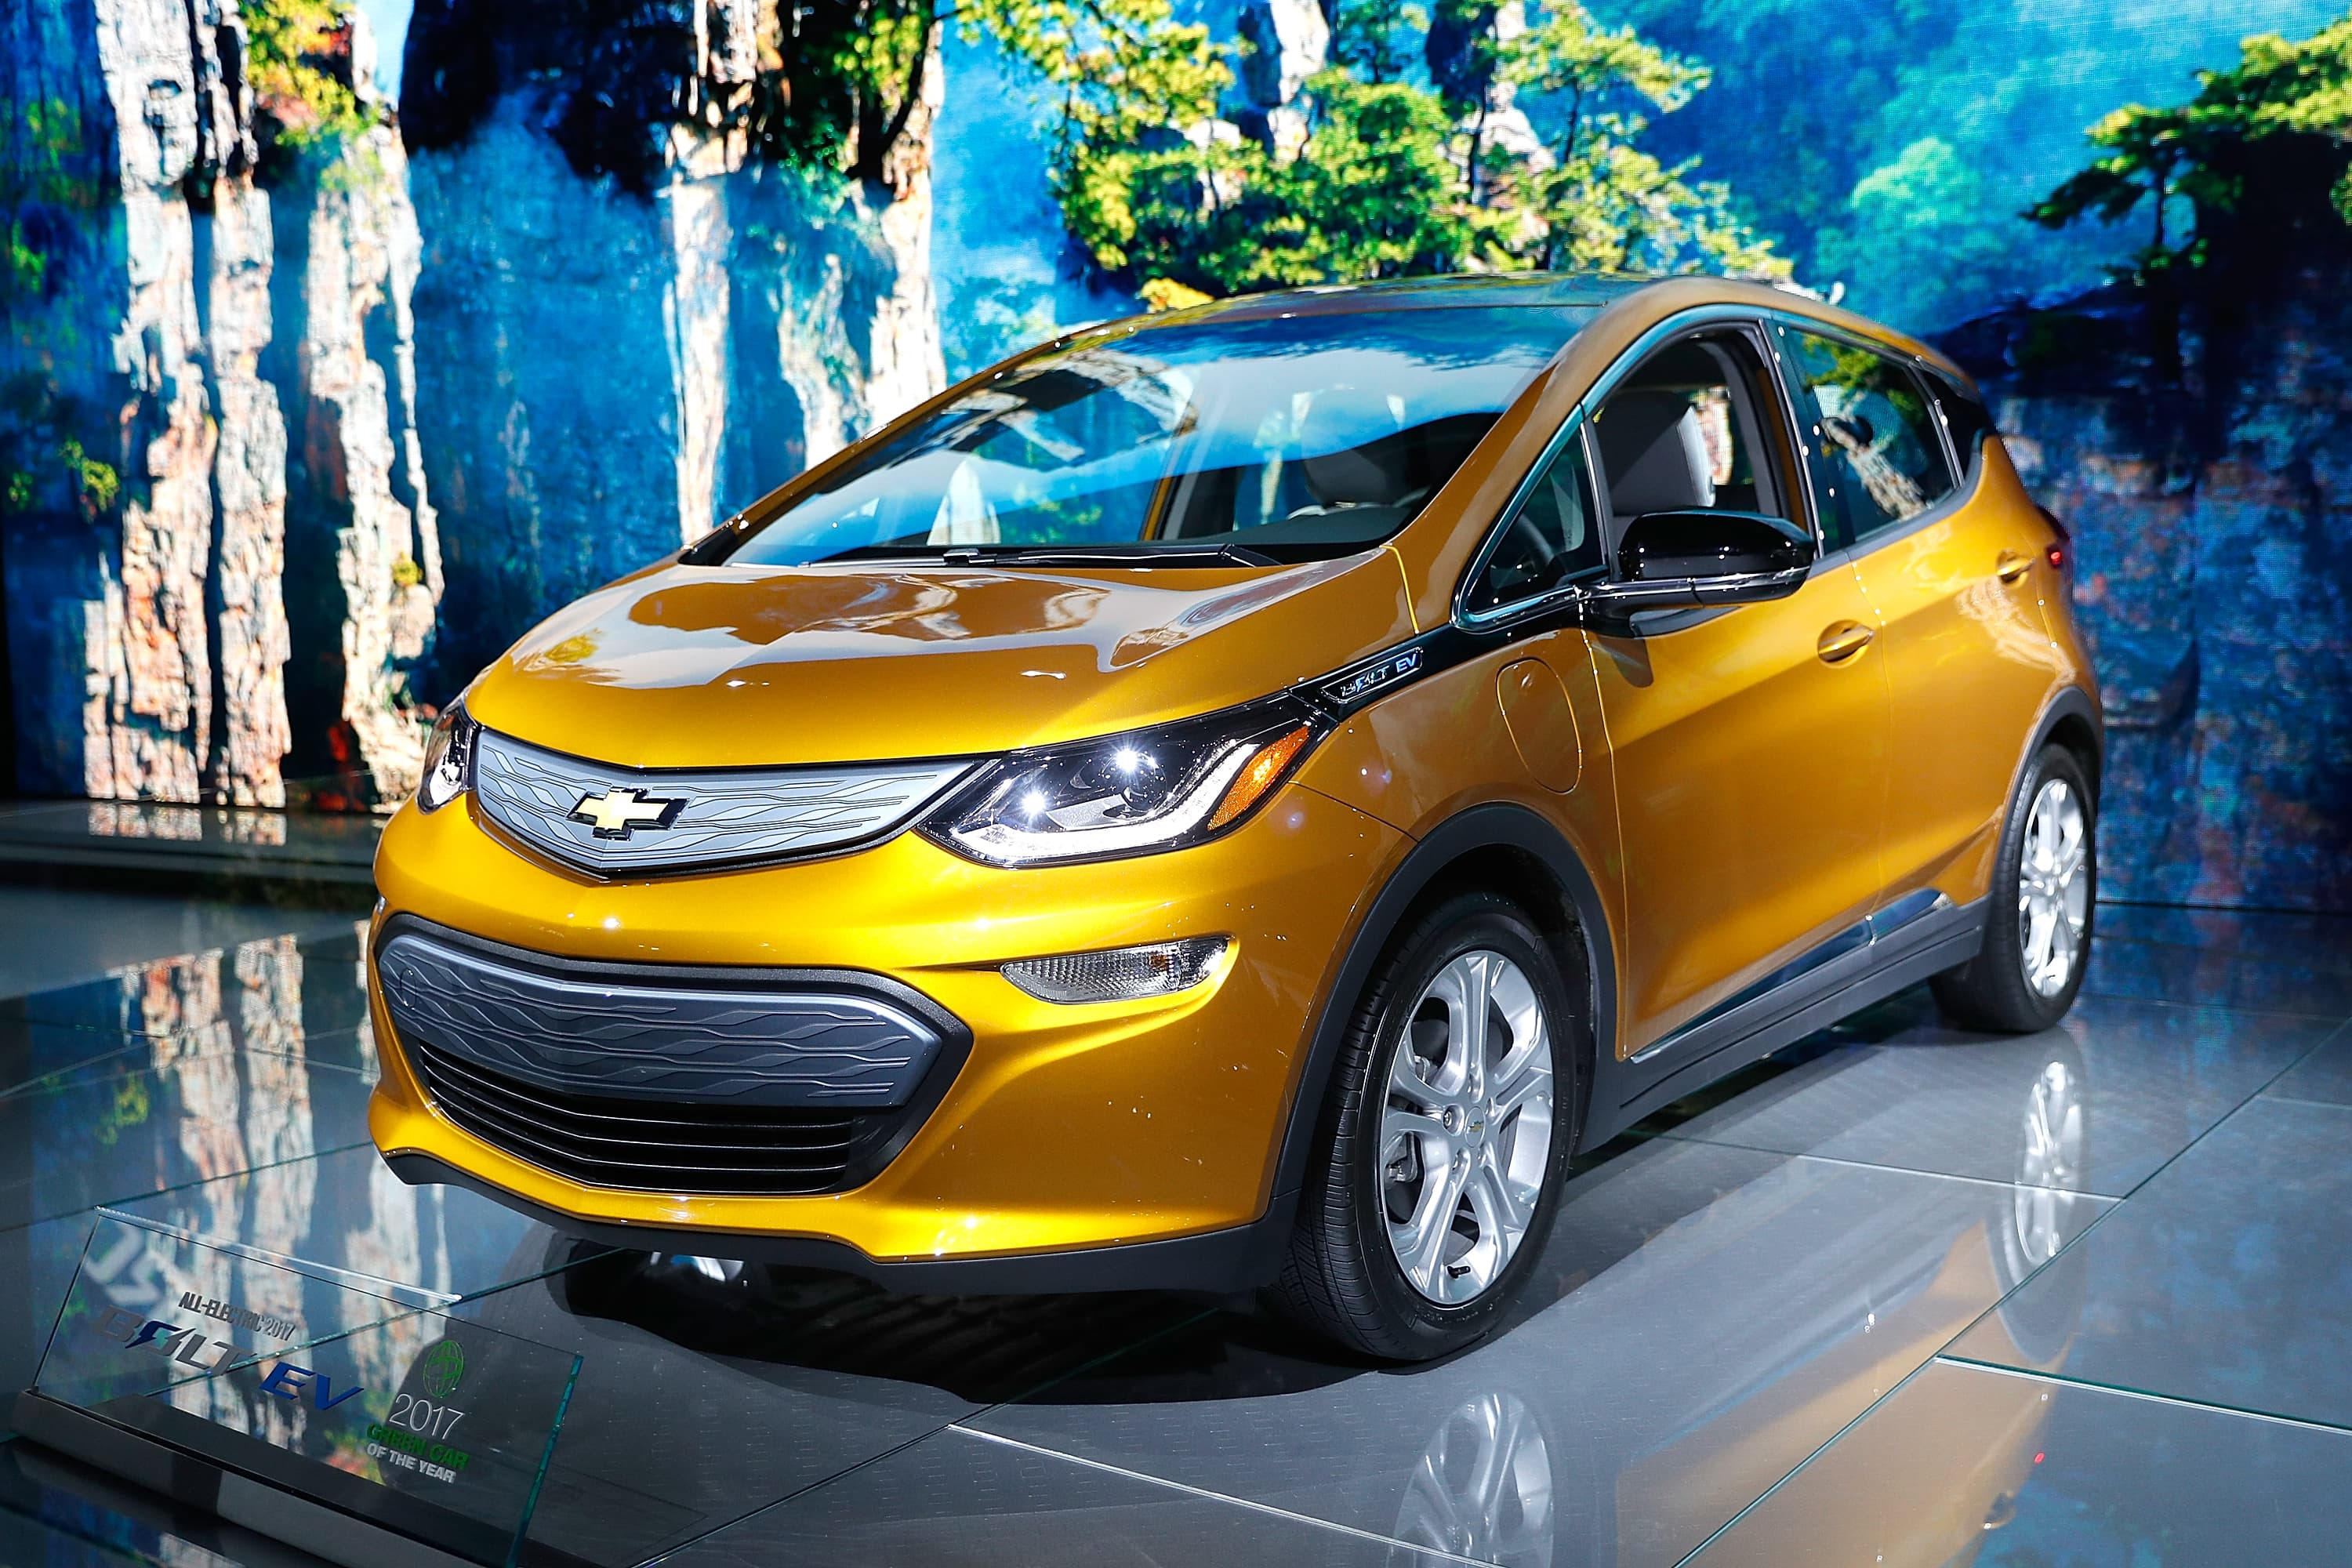 GM recalling Chevrolet Bolt EVs due to fire risks amid federal probe – CNBC